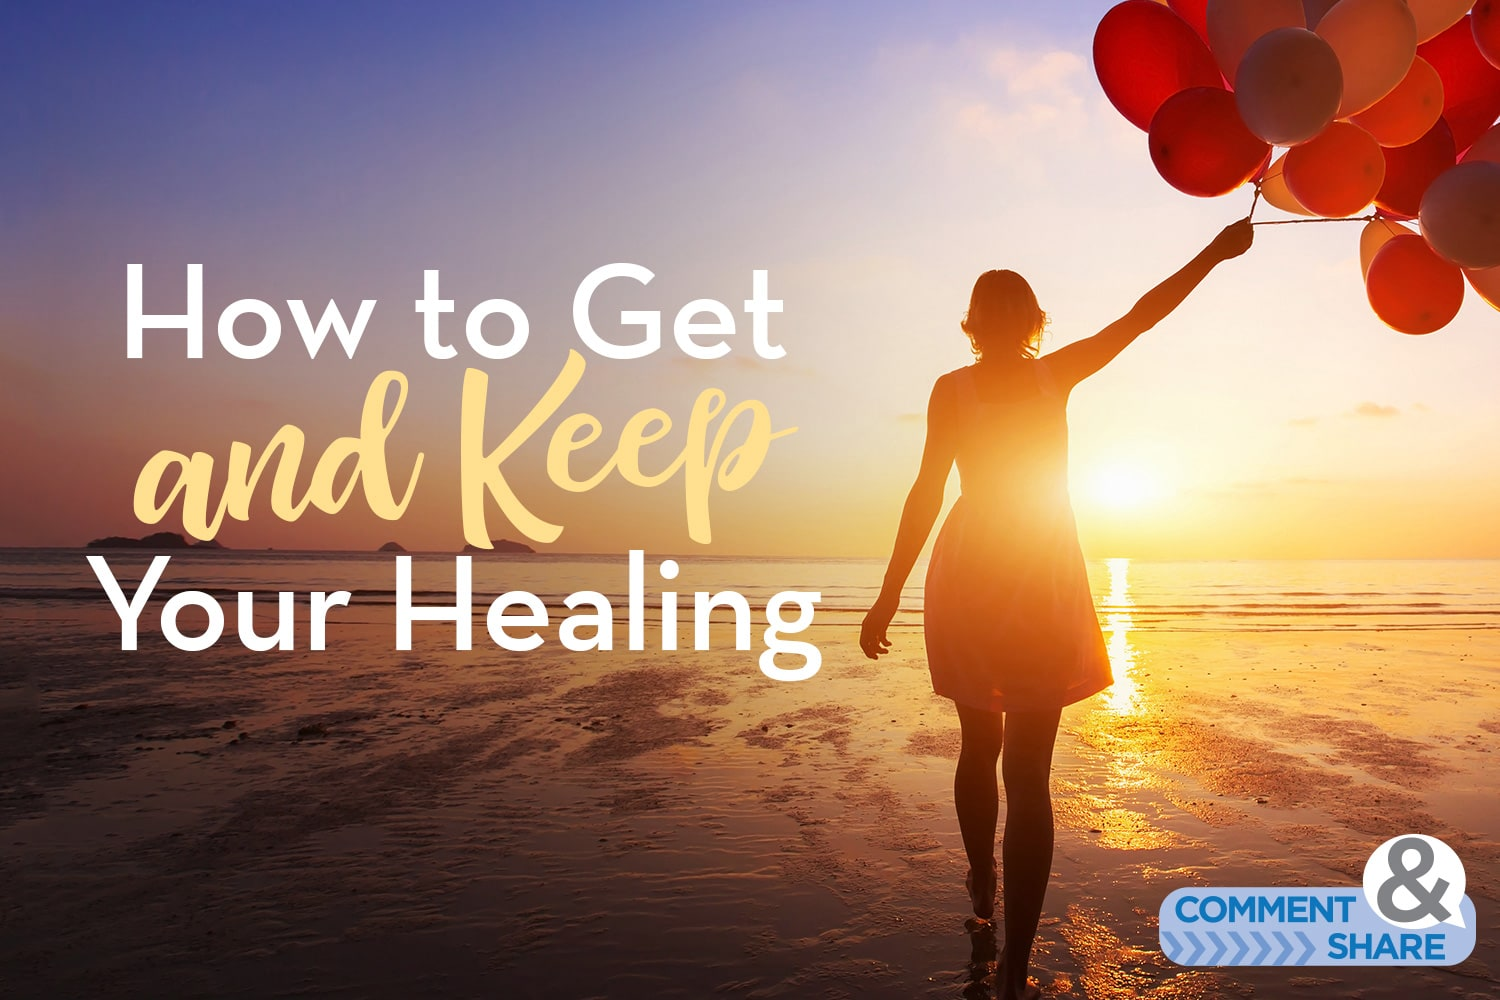 How to Get and Keep Your Healing